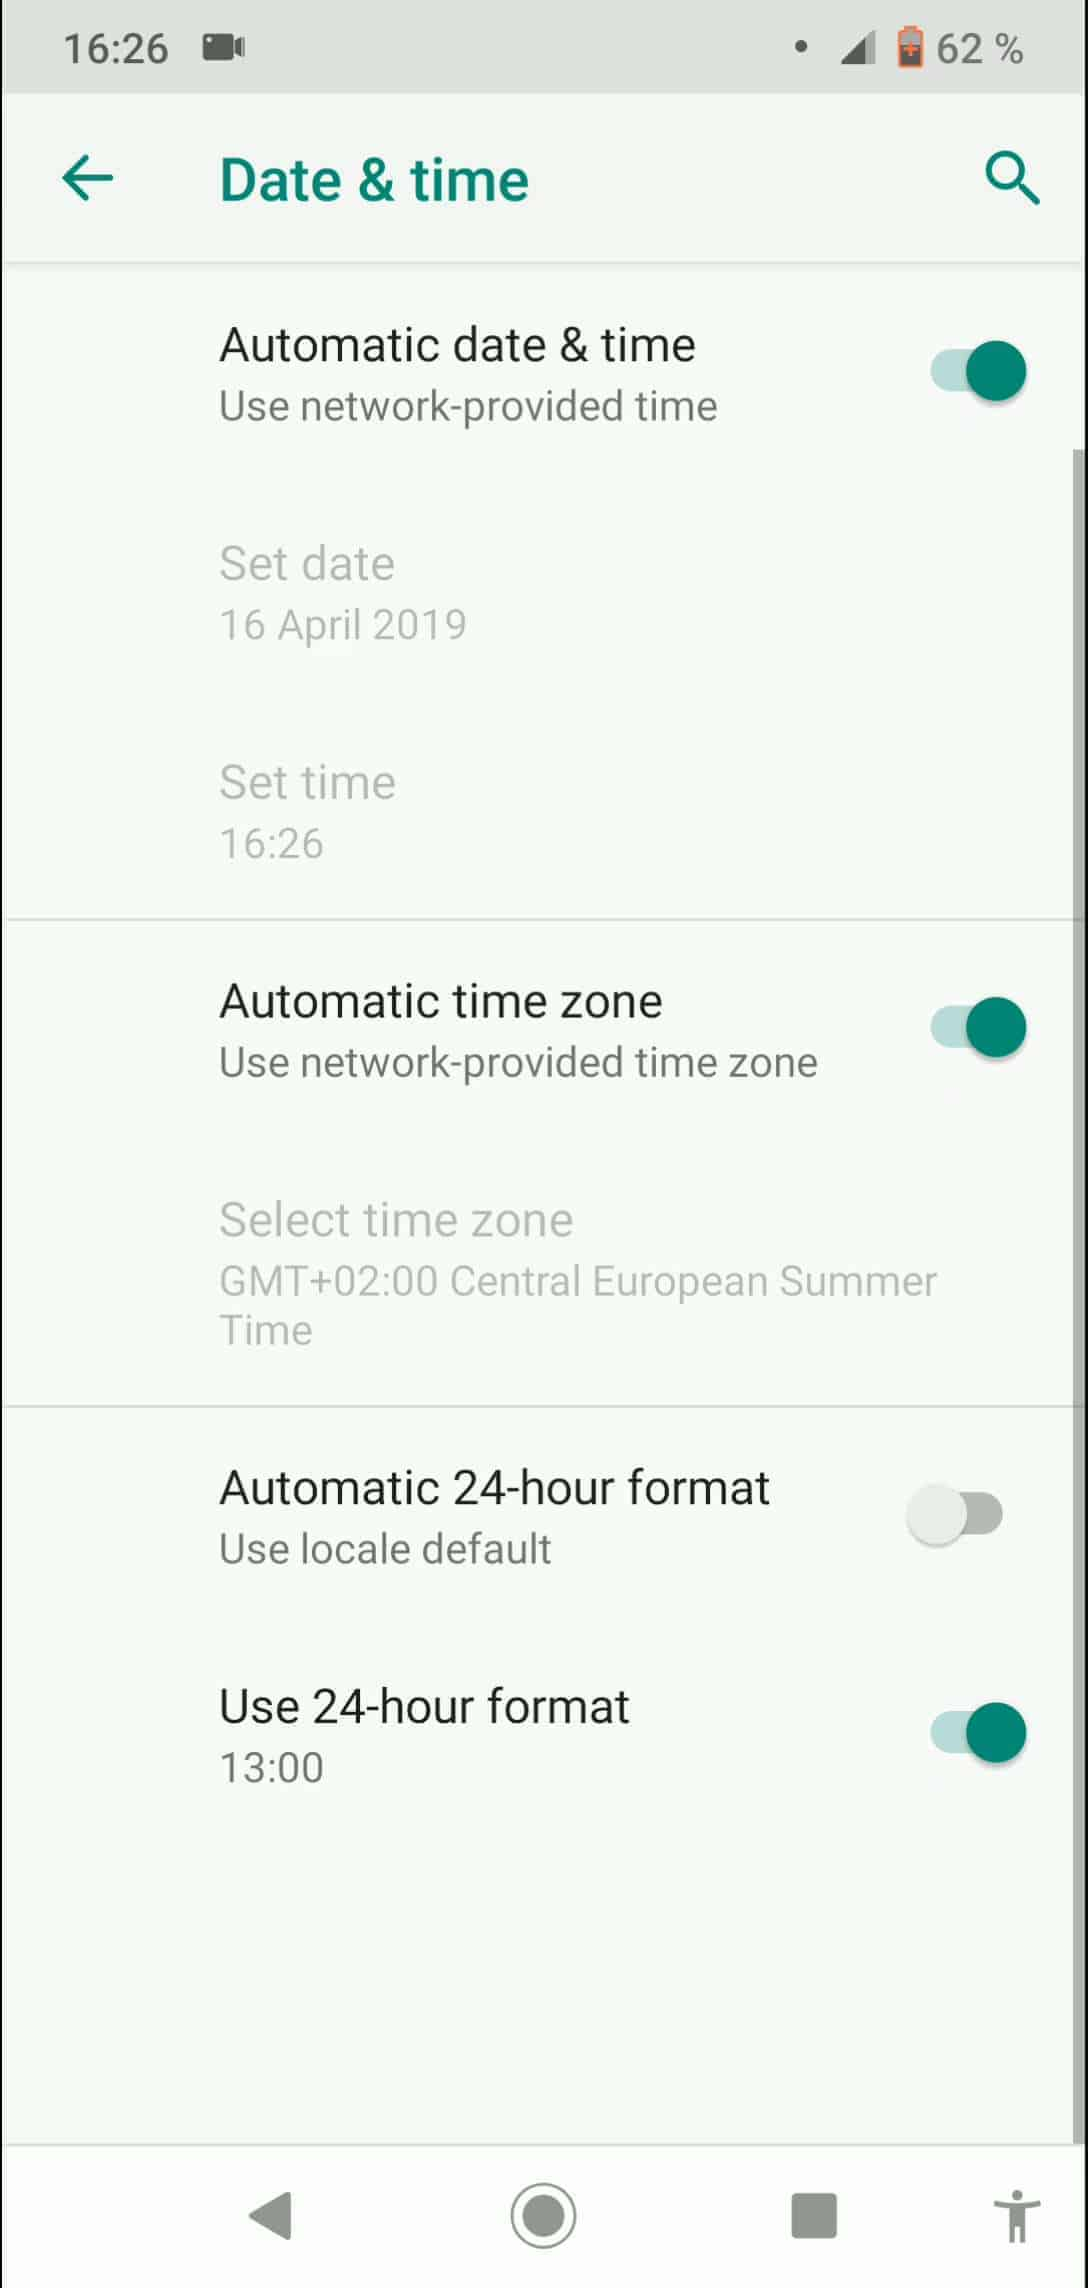 Step 4: Activate or deactivate Automatic date & time